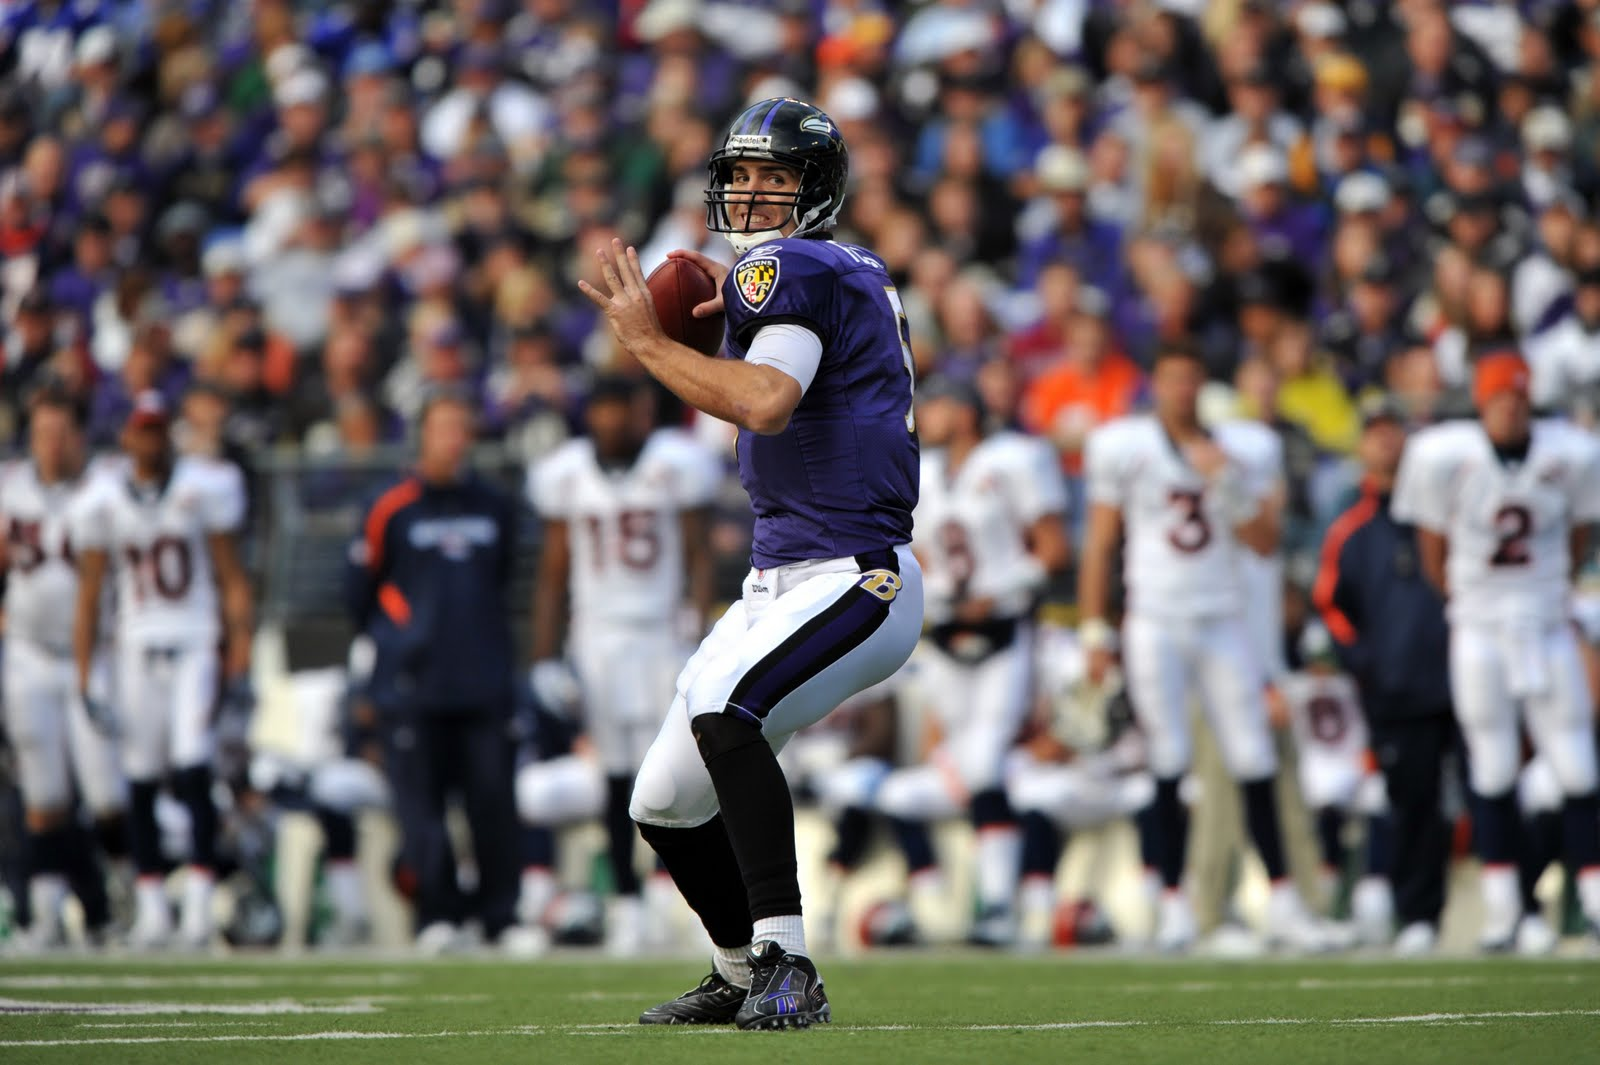 Joe Flacco Throwing Deep